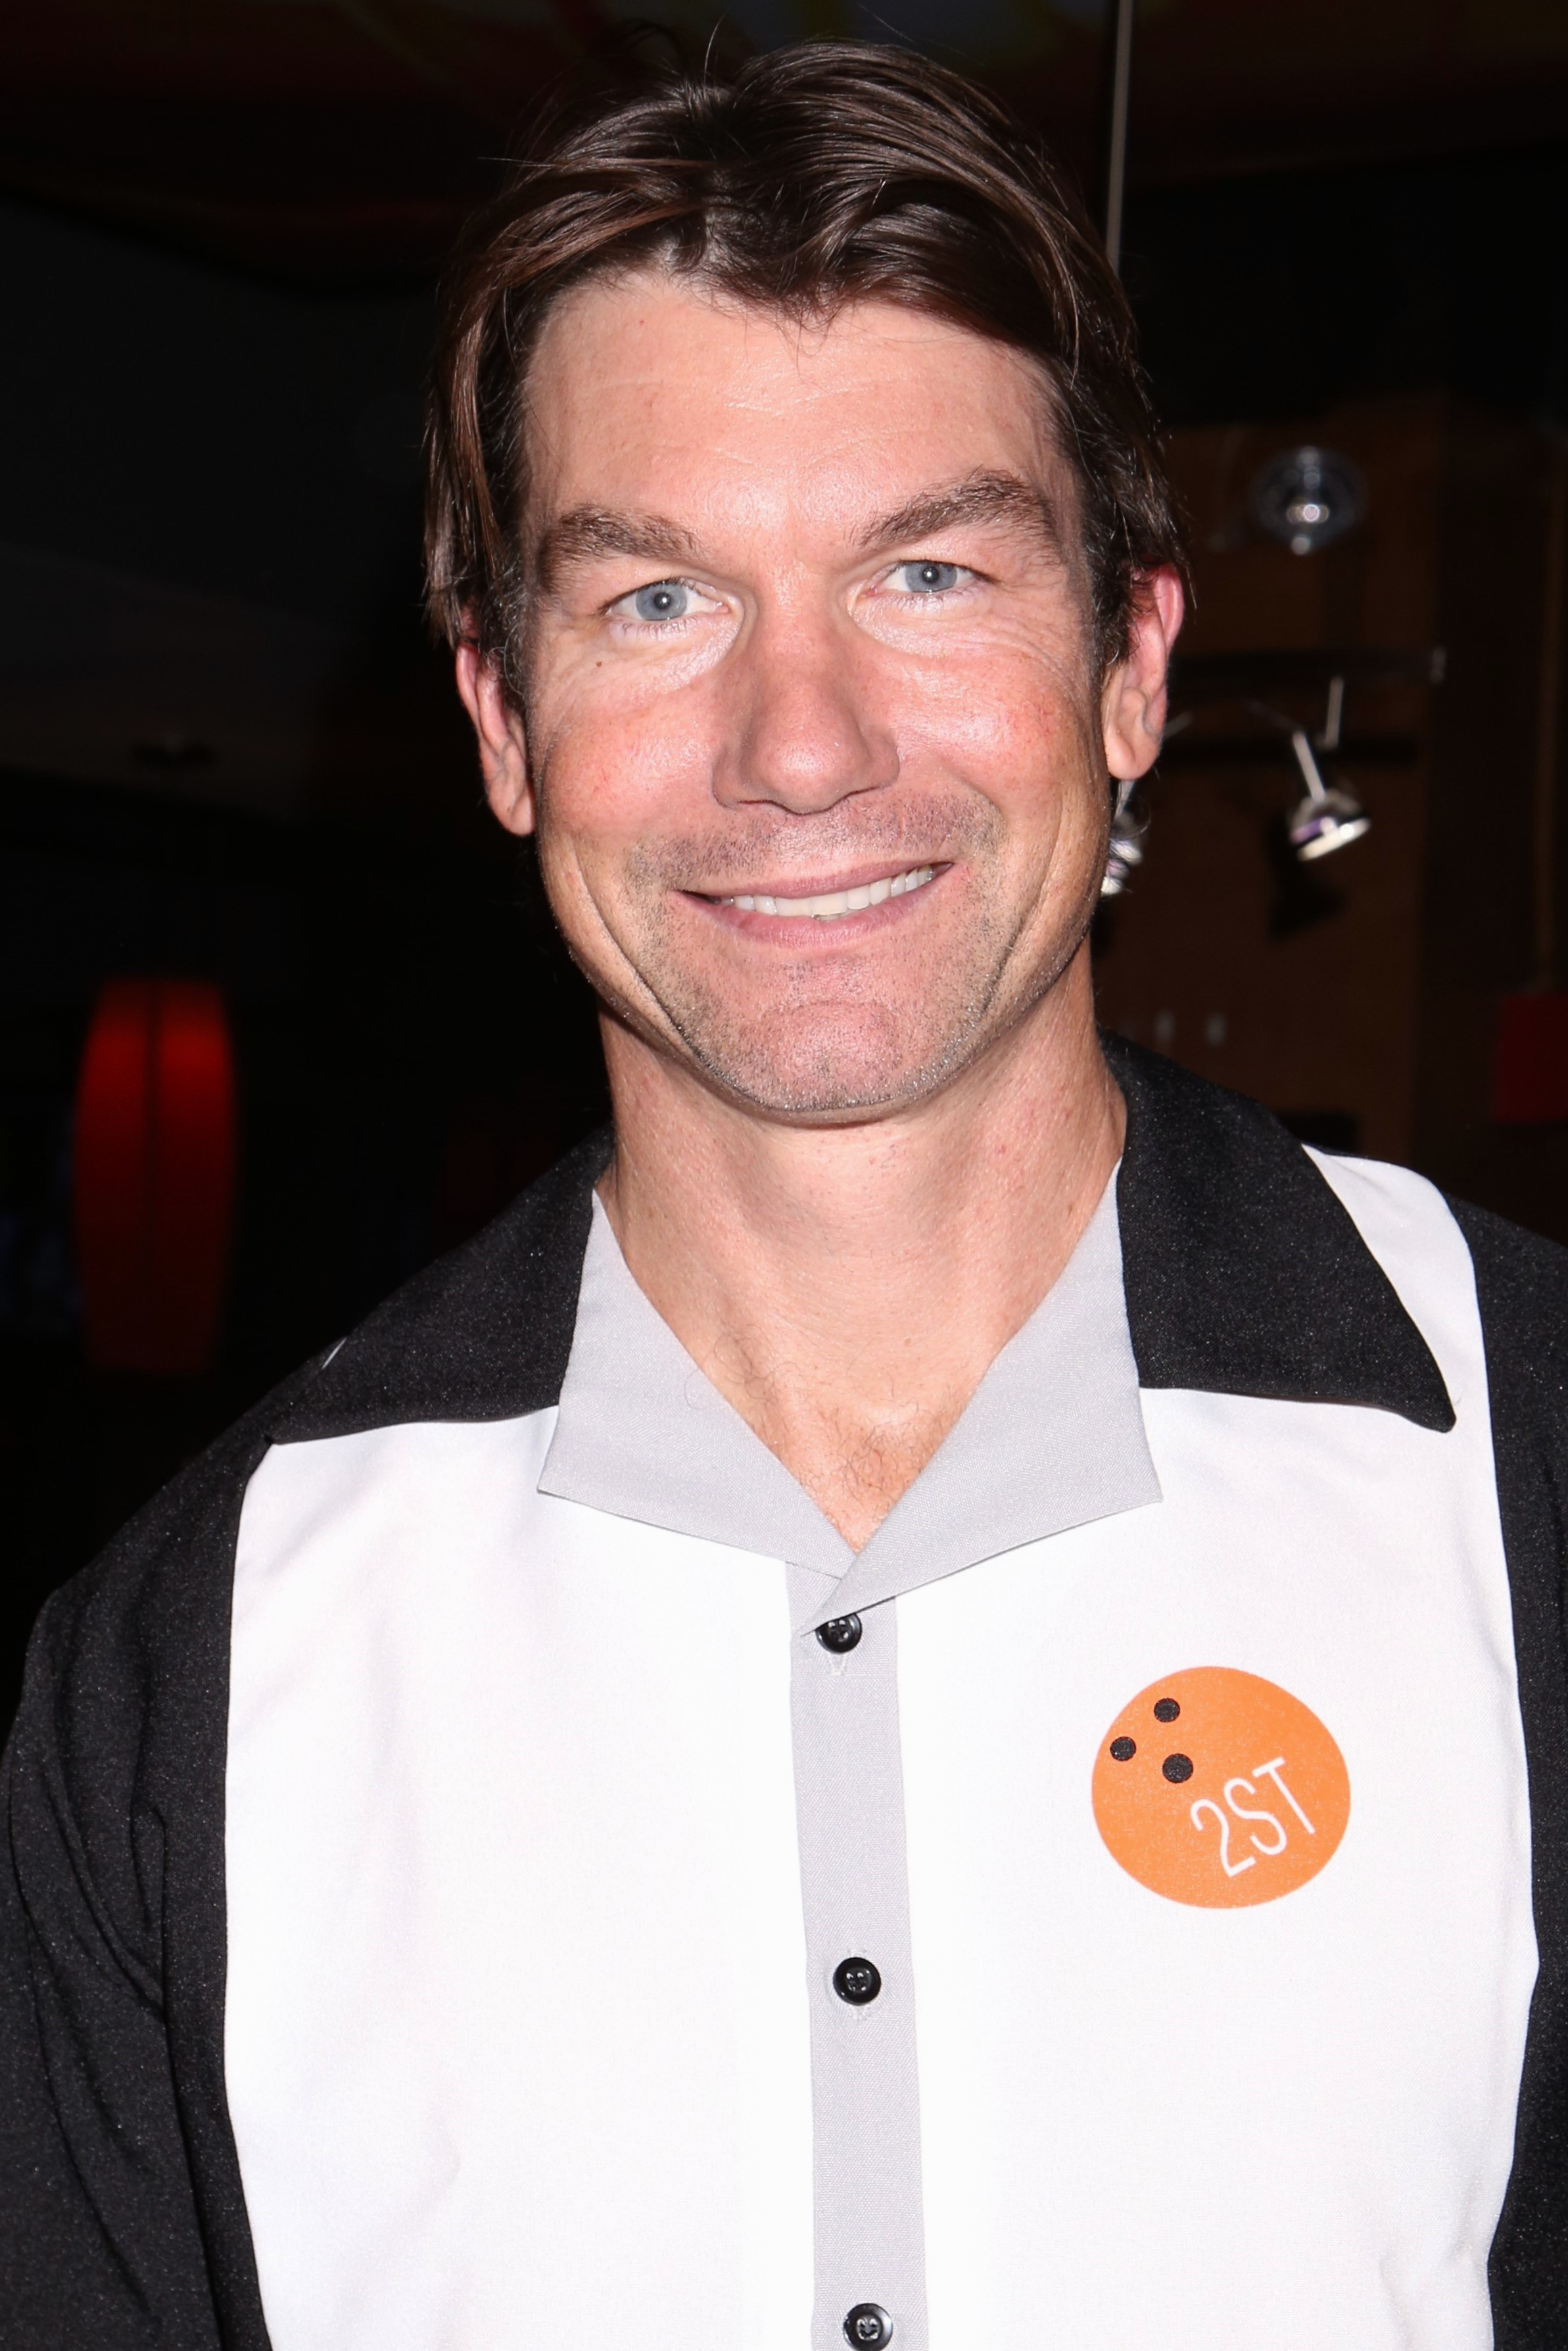 Jerry O'Connell on why he shaves less these days: